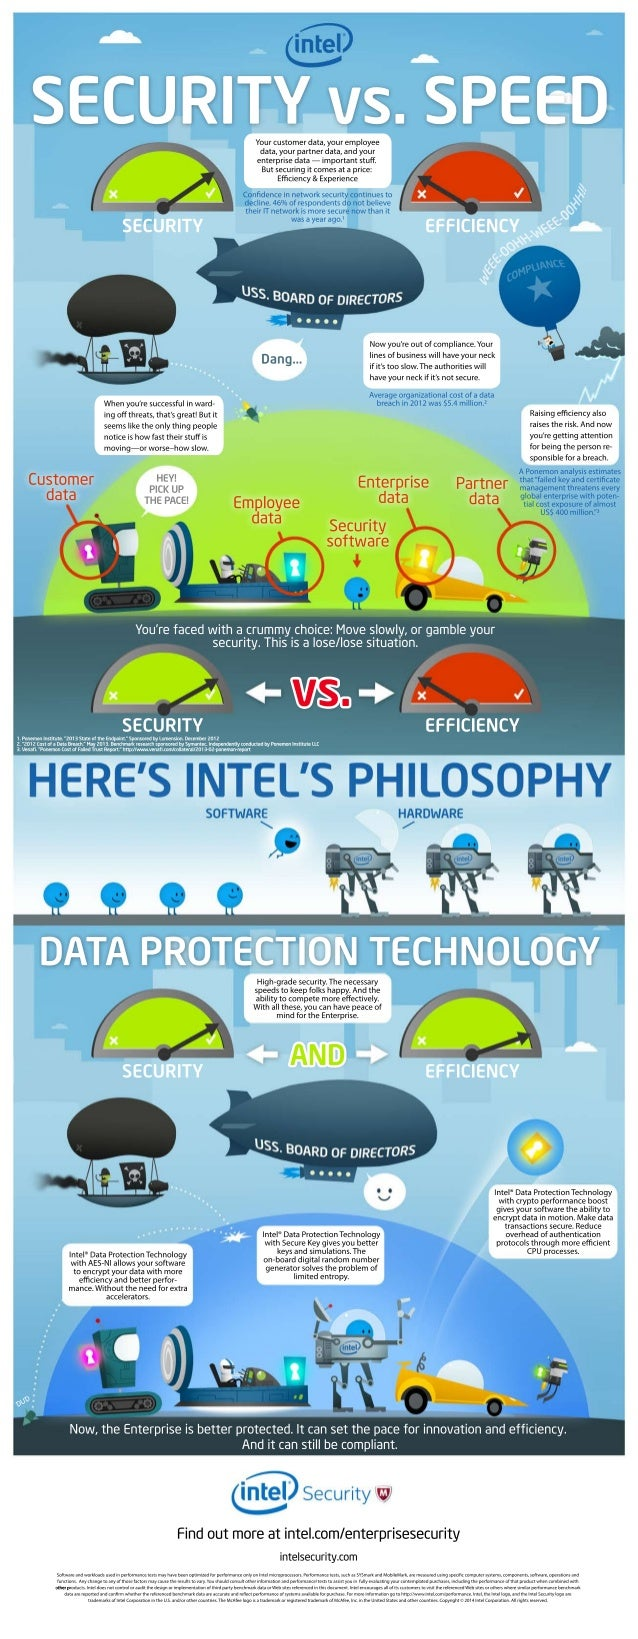 How Intel Security Protects Enterprise Data - Infographic